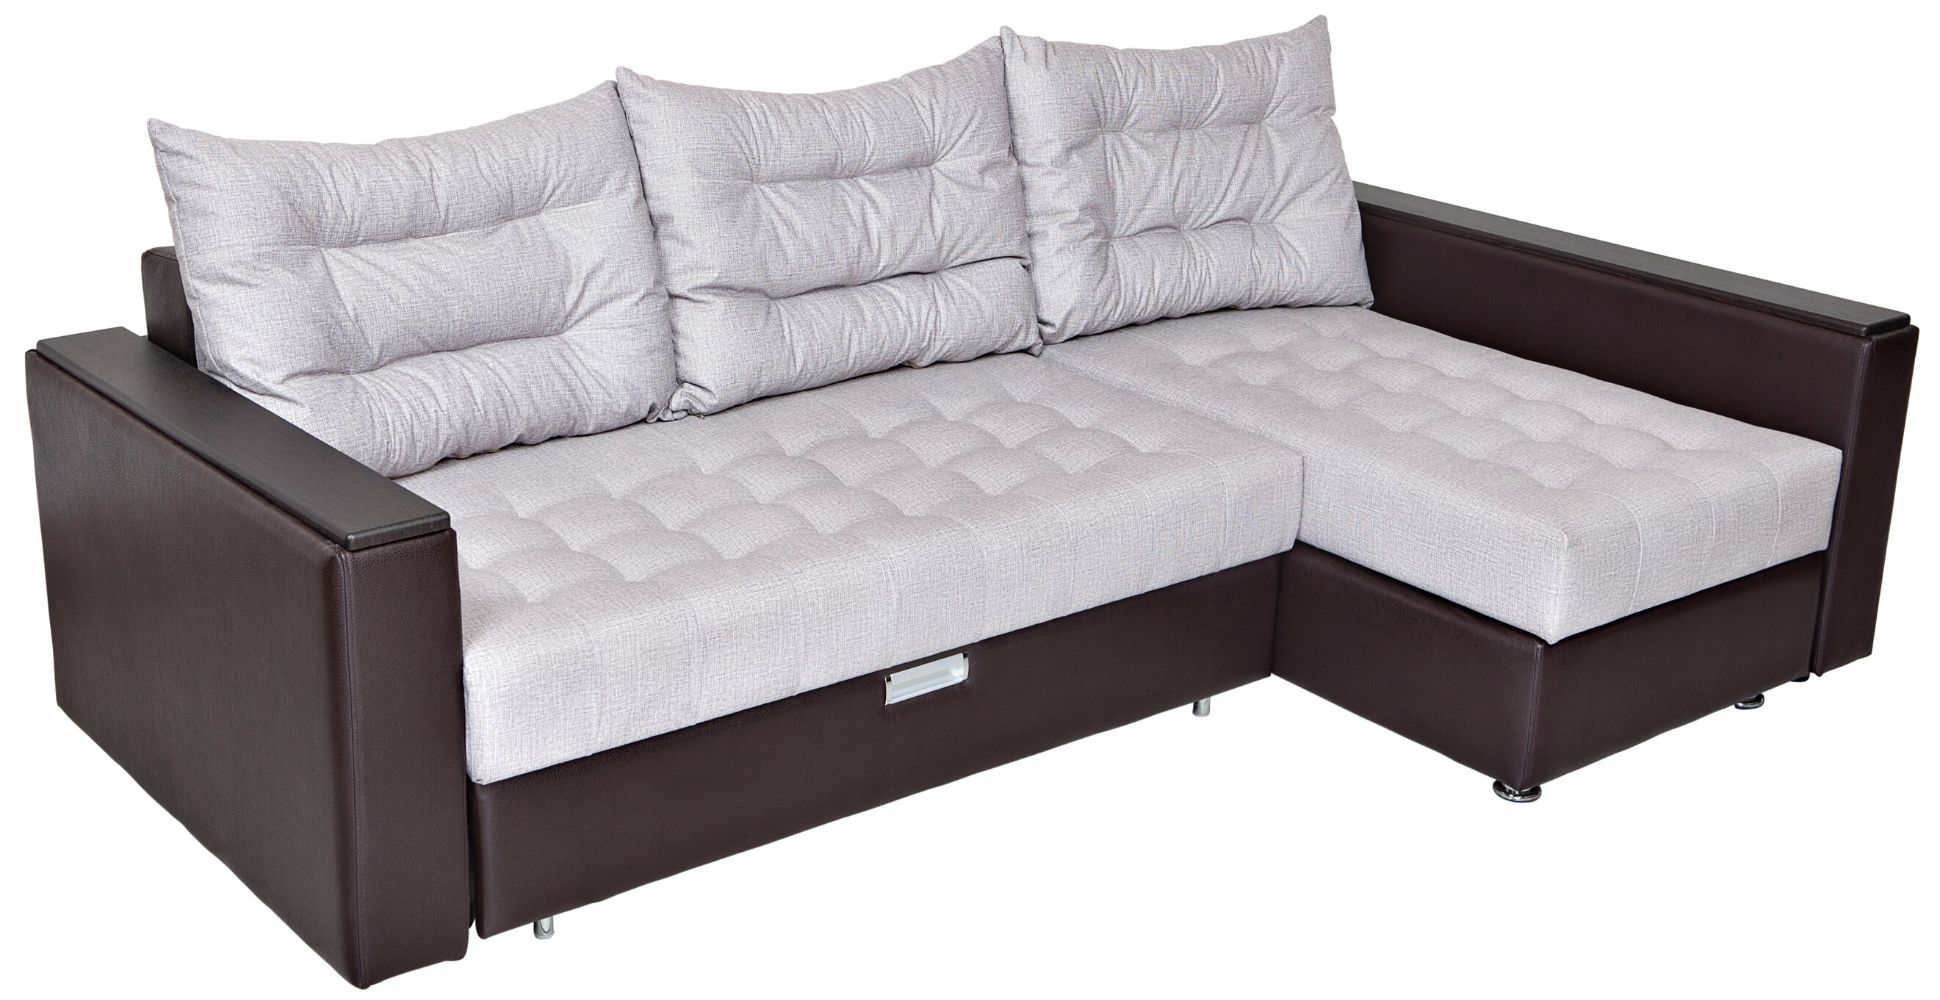 5 Best Sofa Beds For Everyday Use Nov 2020 Review Spruce Up